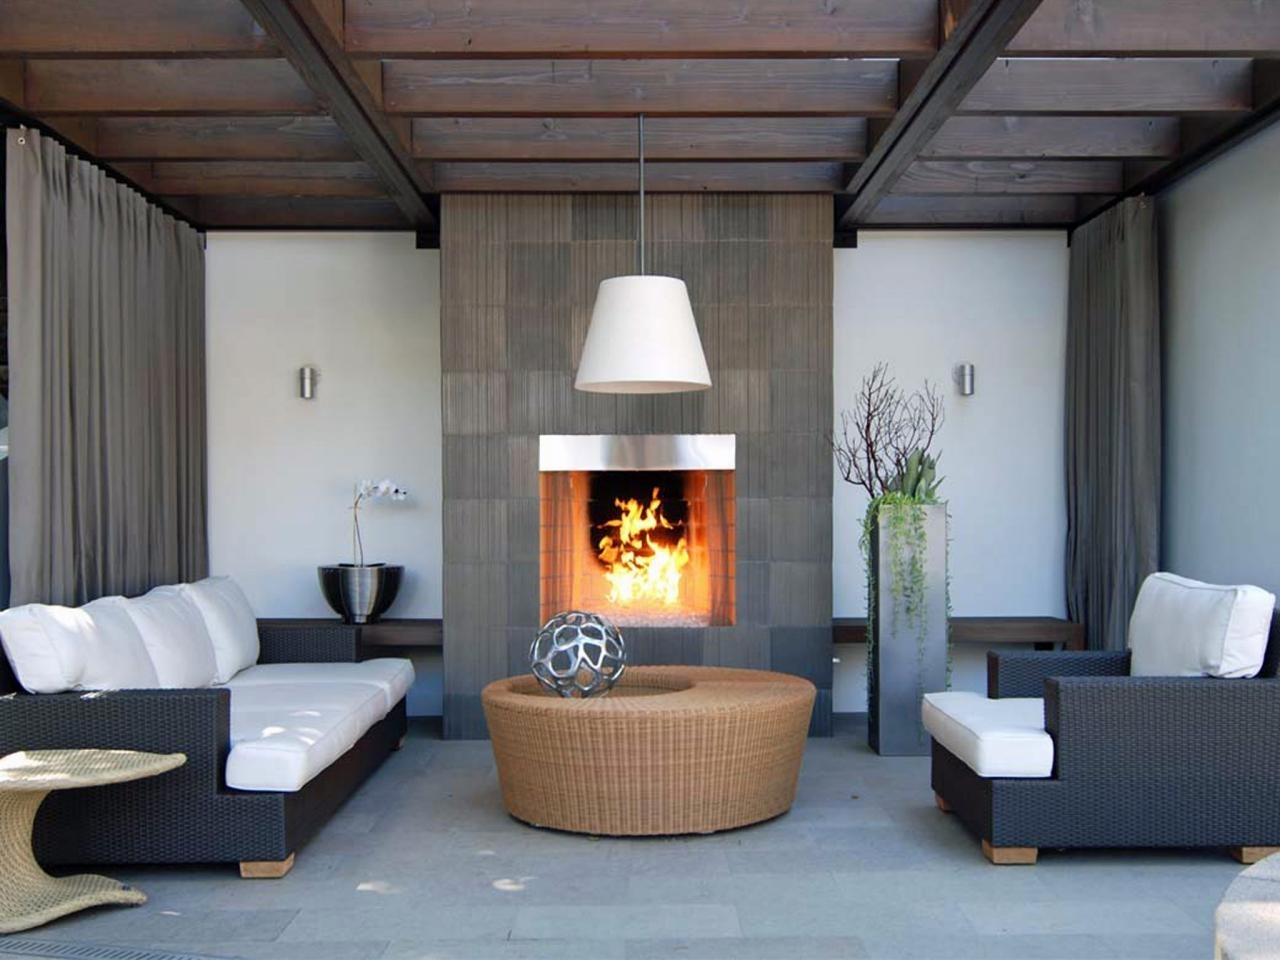 Outdoor Electric Fireplace Options Hgtv Regarding Fake Outdoor Fireplace Build Fake Outdoor Fireplace